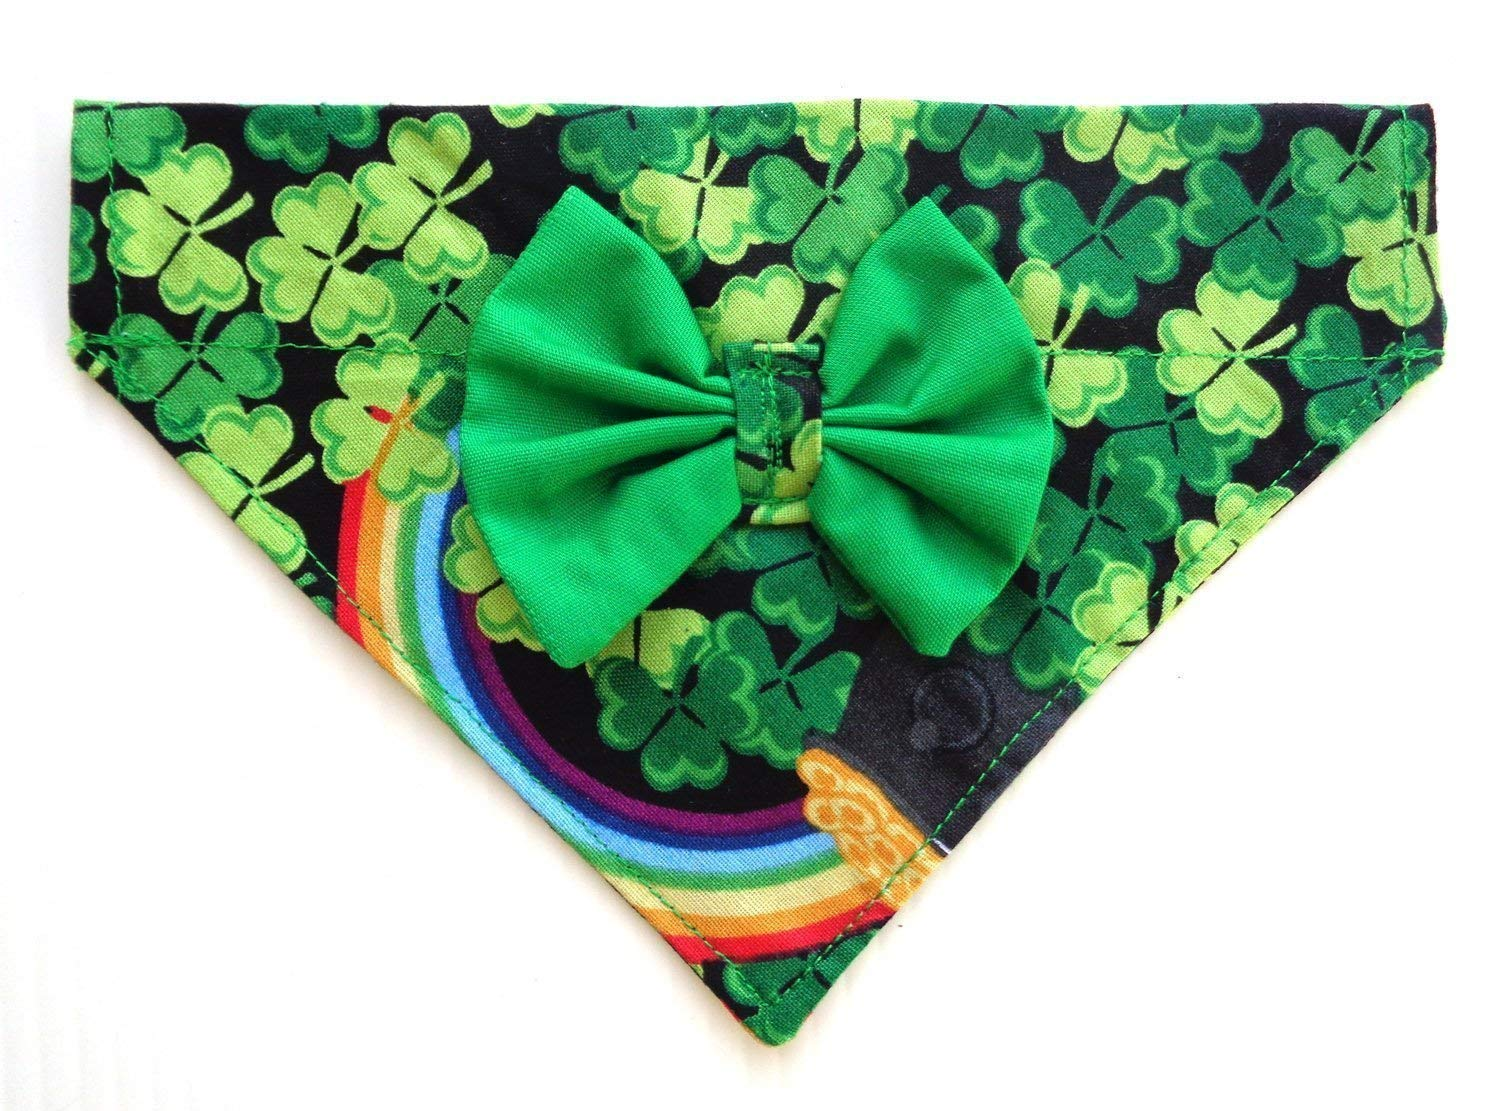 2 in 1 Bandana and Bow 3 Leaf Clover Print Over the collar thread-thru Dog Bandana, St Patrick's Day Accessories, Petwear Neckwear (Small Size)